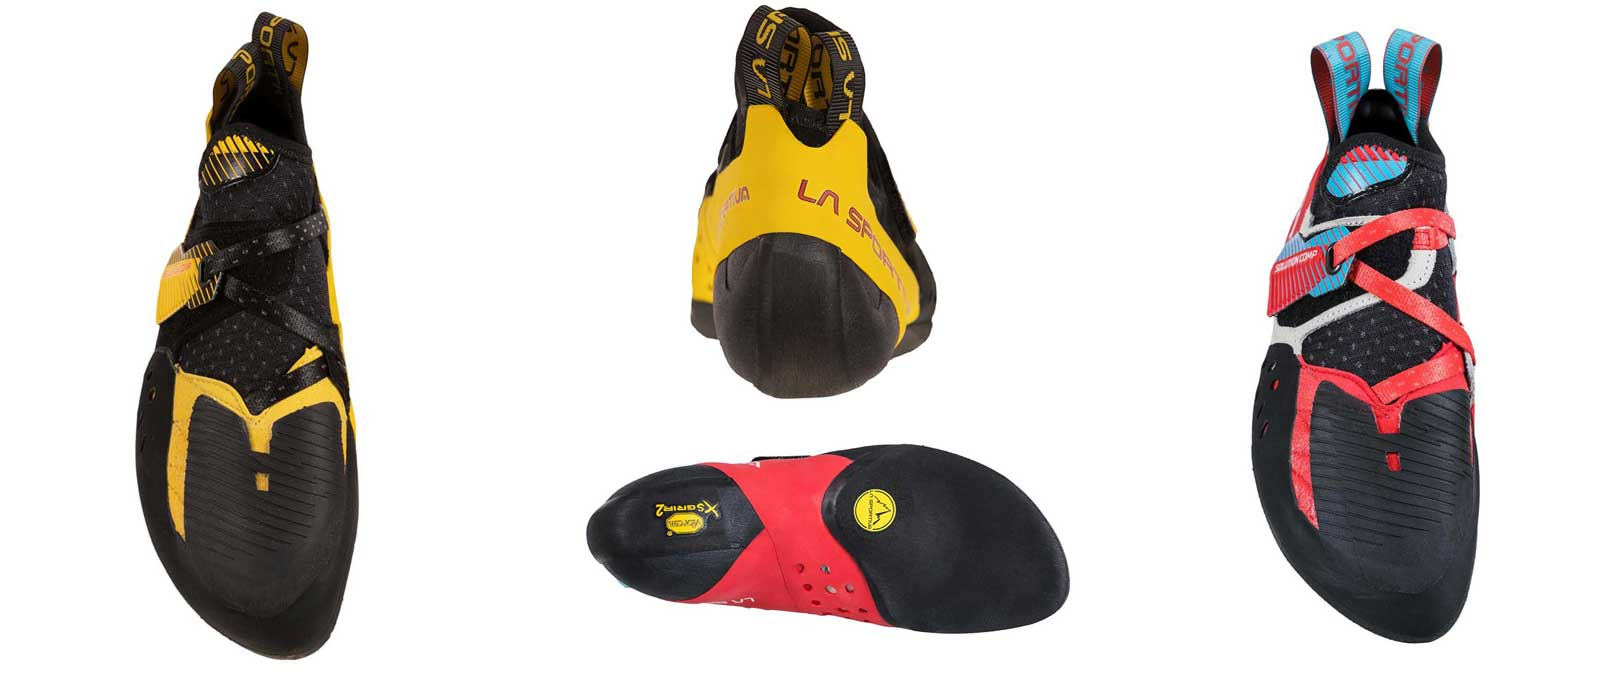 La Sportiva Solution Comp Product Review_2